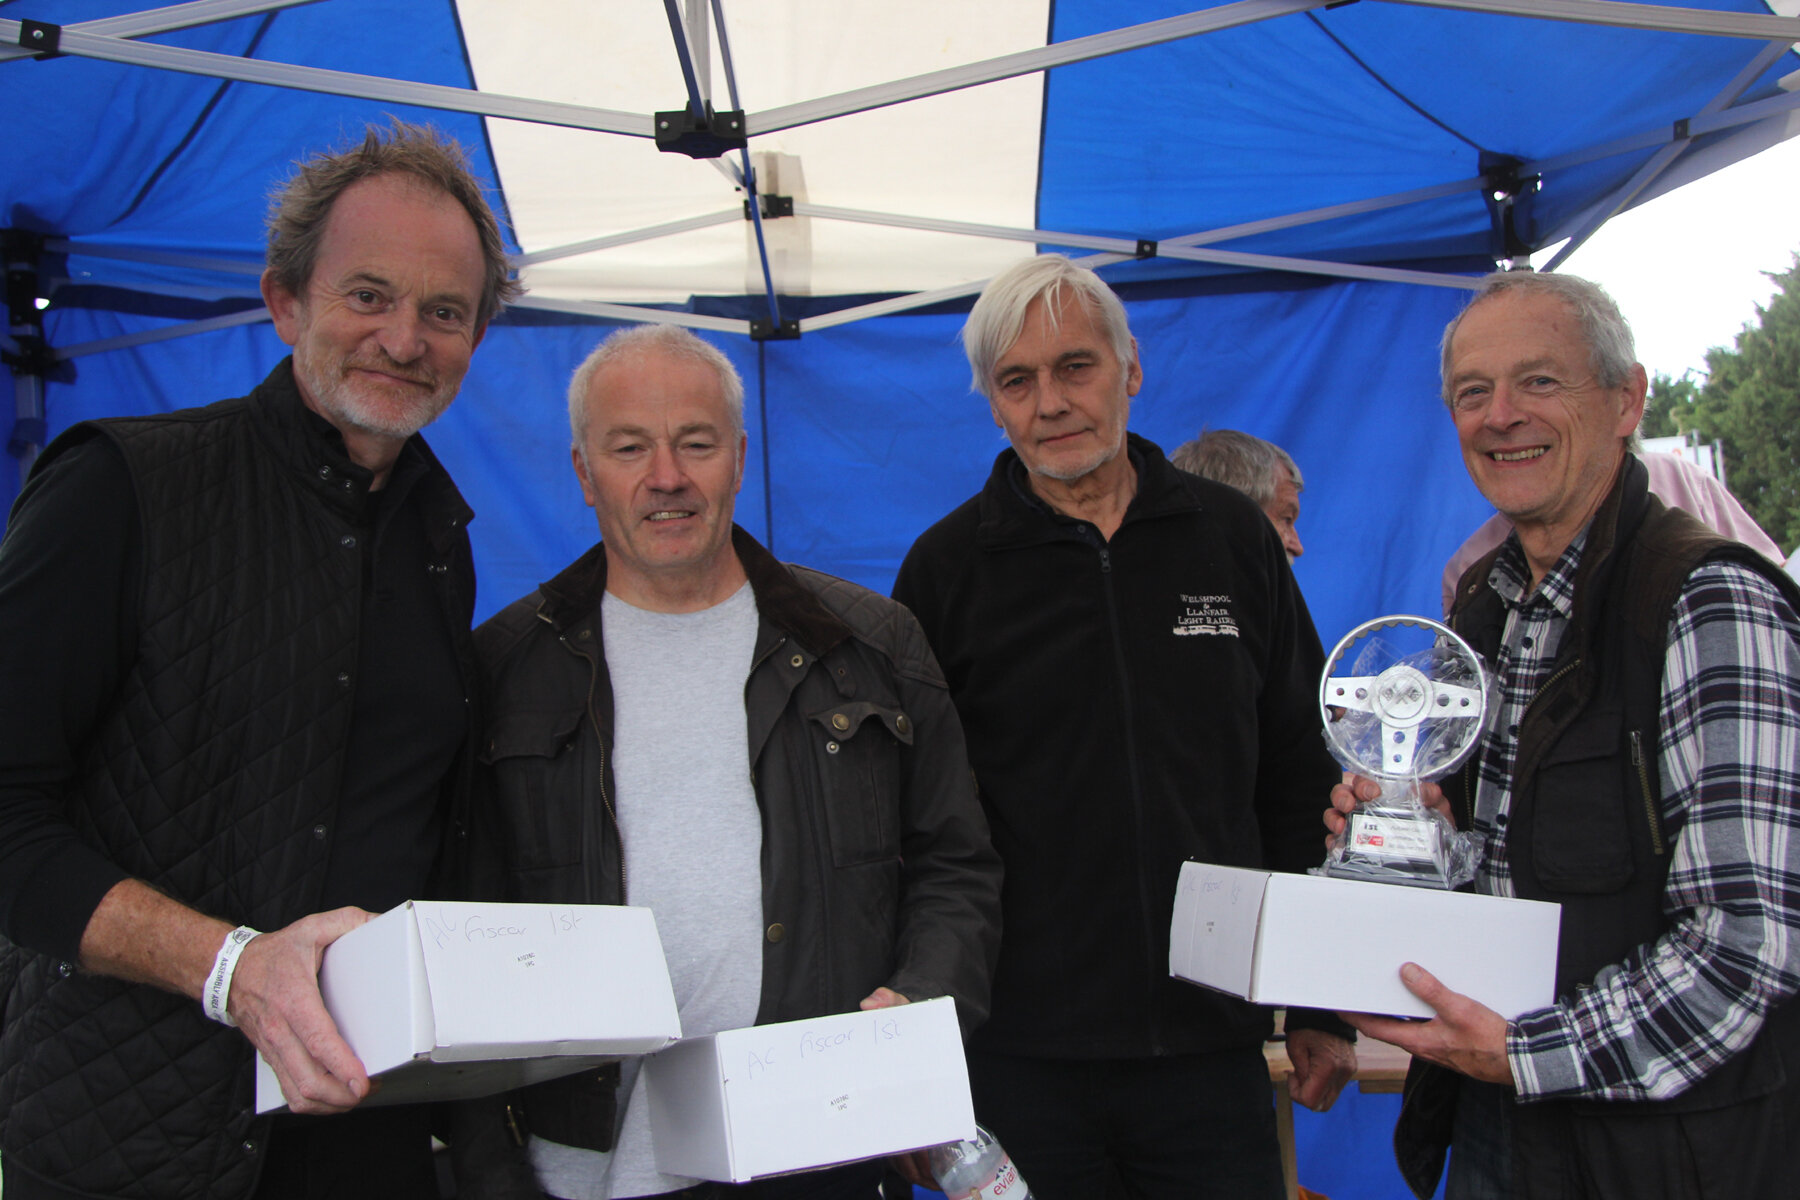 The 'on the day' team prize went to the Lotus Legends of (l to R) Robin Ellis, Barry Dye & Brian Arculus